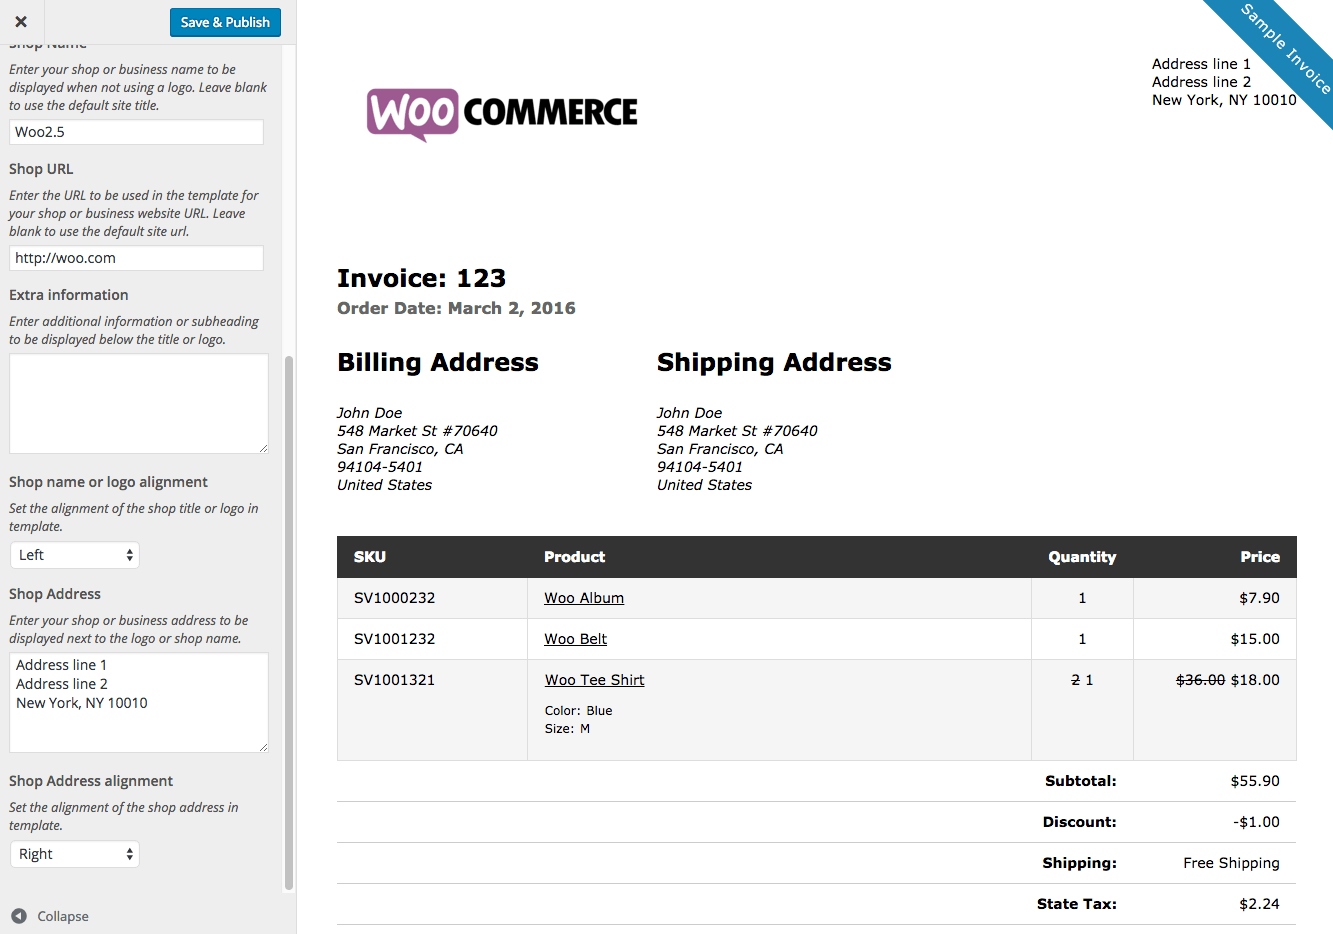 Pxworkoutfreeus  Mesmerizing Woocommerce Print Invoices Amp Packing Lists  Woocommerce Docs With Handsome Woocommerce Print Invoices  Packing Lists Customizer With Endearing Receipt Voucher Sample Also Receipts For Rent Payments In Addition Bill Receipt Format And Us Taxi Receipt As Well As Blank Sales Receipt Template Additionally Scanner That Organizes Receipts From Docswoocommercecom With Pxworkoutfreeus  Handsome Woocommerce Print Invoices Amp Packing Lists  Woocommerce Docs With Endearing Woocommerce Print Invoices  Packing Lists Customizer And Mesmerizing Receipt Voucher Sample Also Receipts For Rent Payments In Addition Bill Receipt Format From Docswoocommercecom